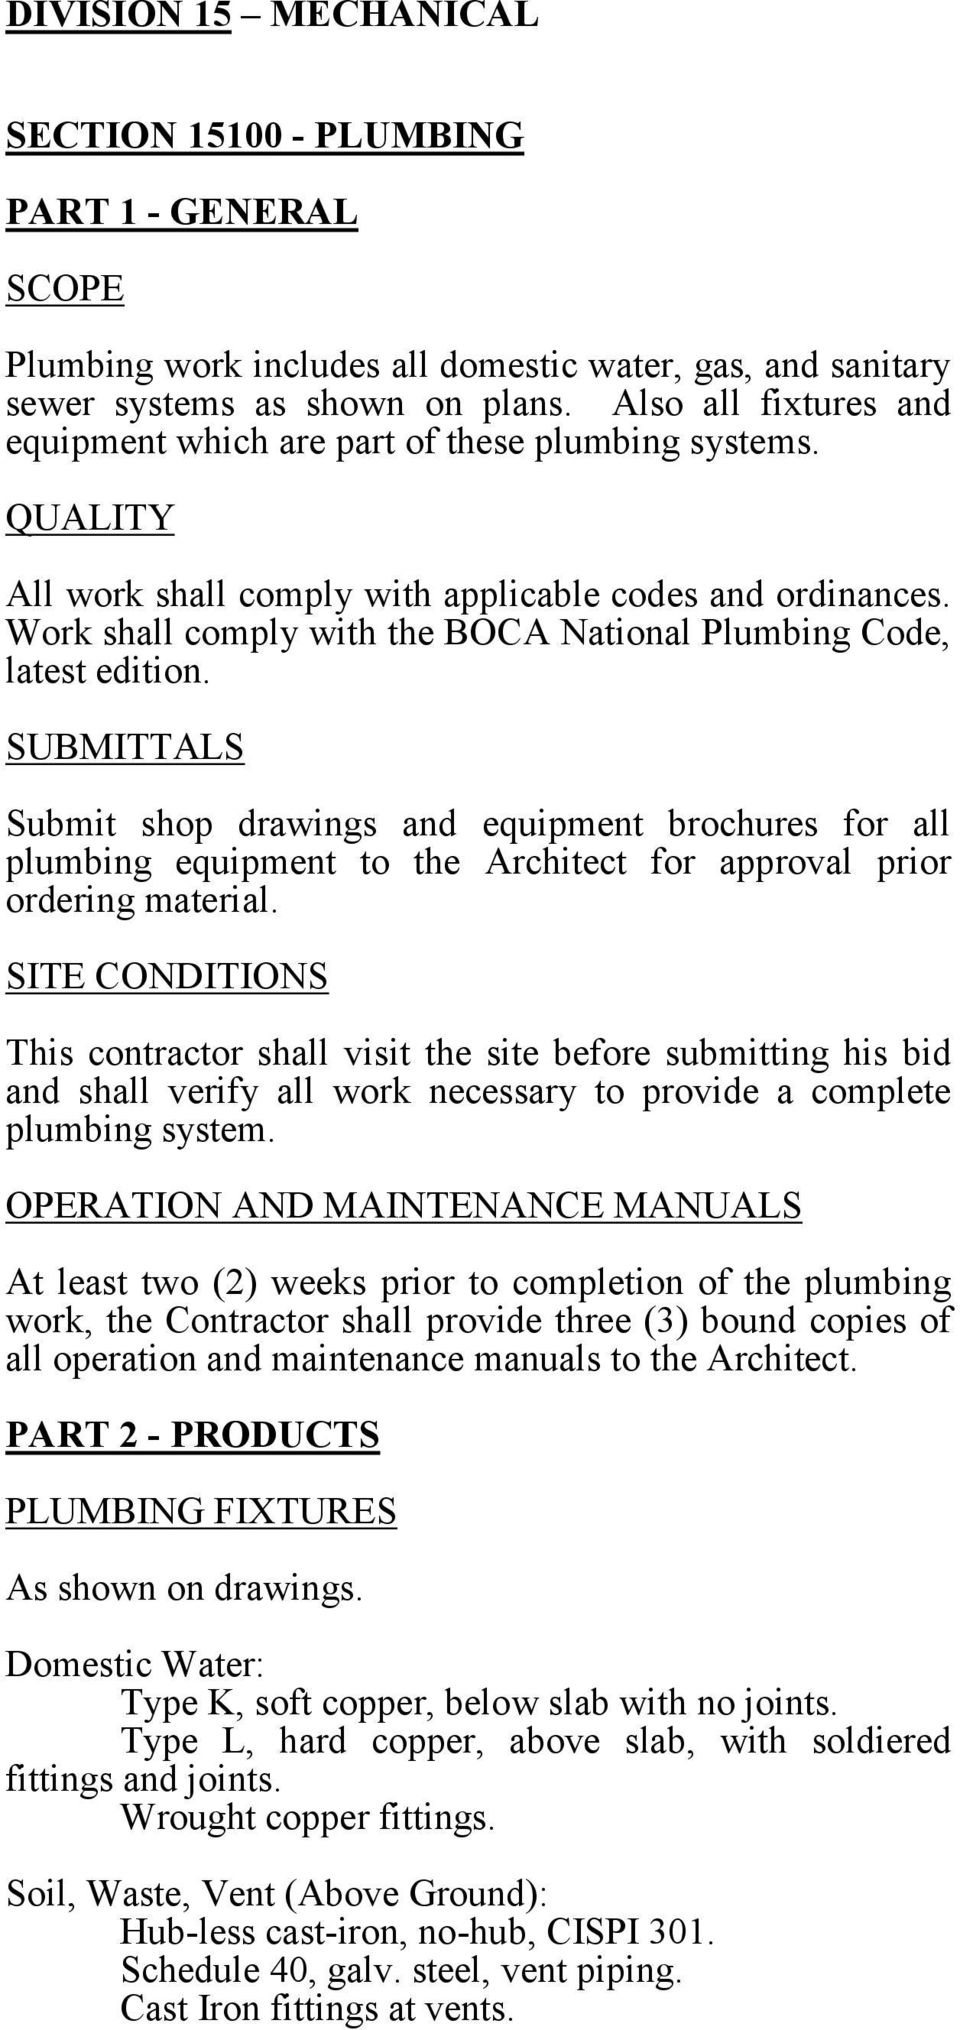 Work shall comply with the BOCA National Plumbing Code, latest edition.